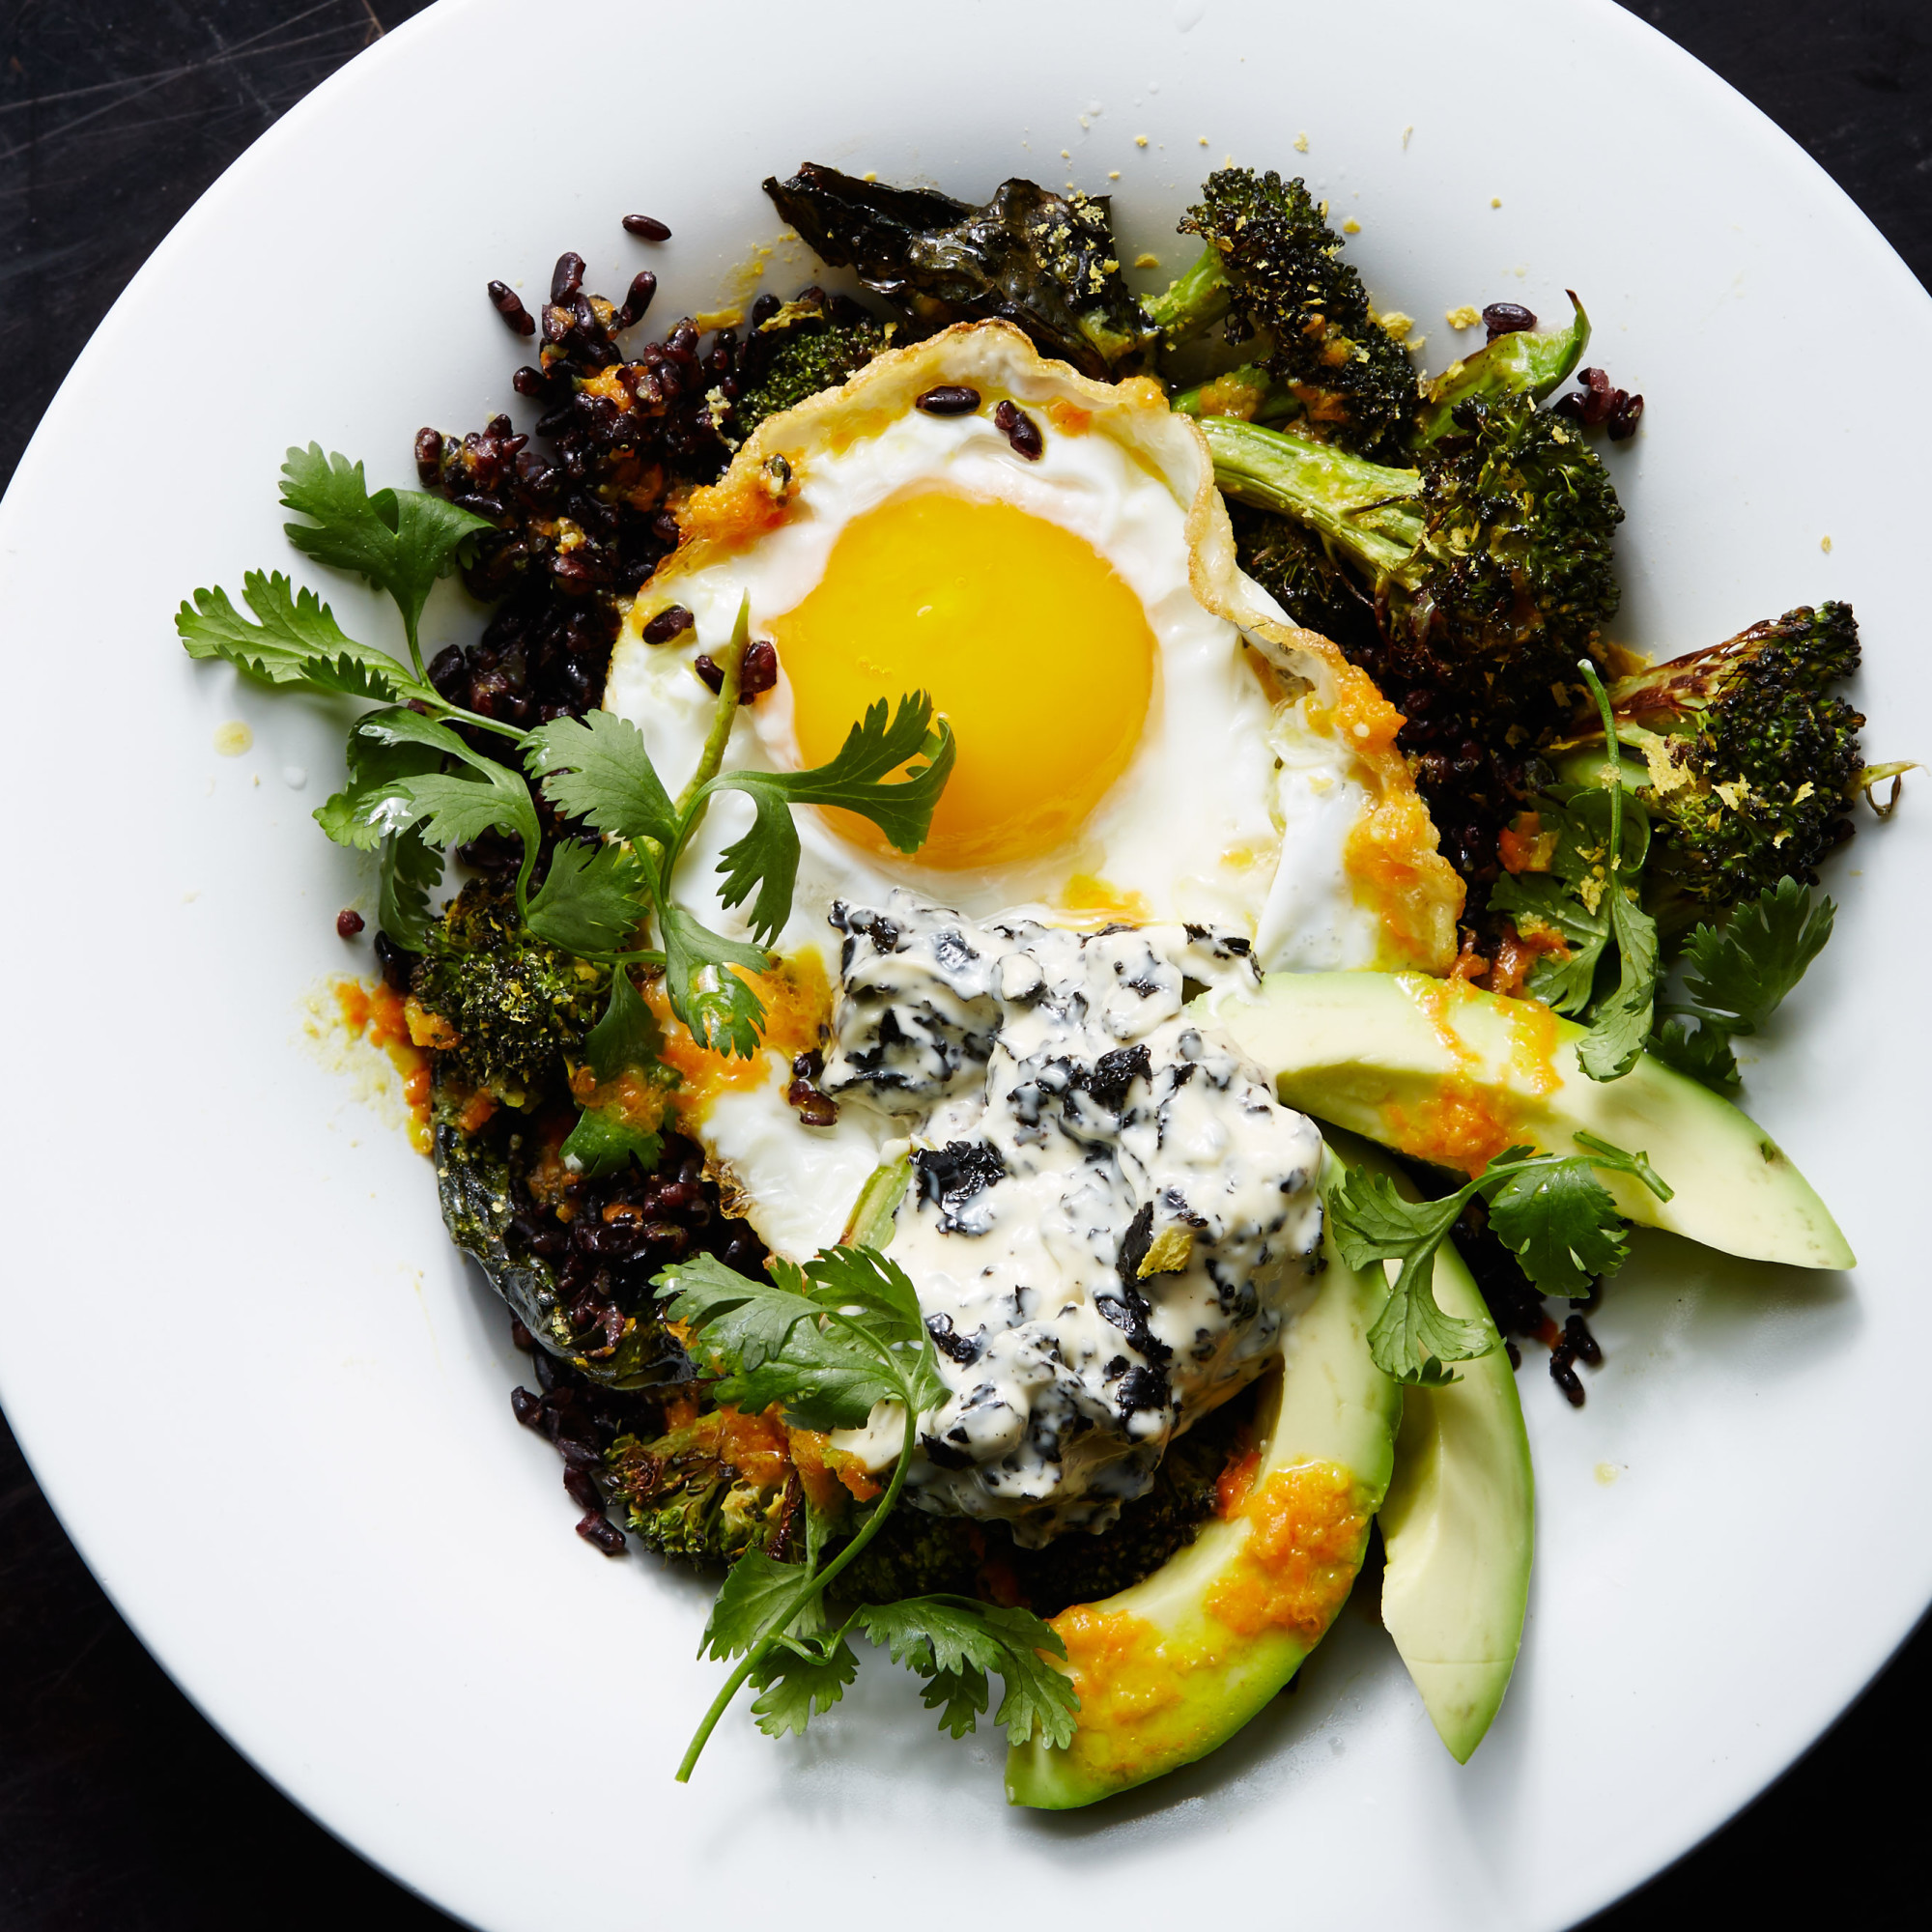 Recipes By Course Stir-Fried Black Rice with Fried Egg and Roasted ...